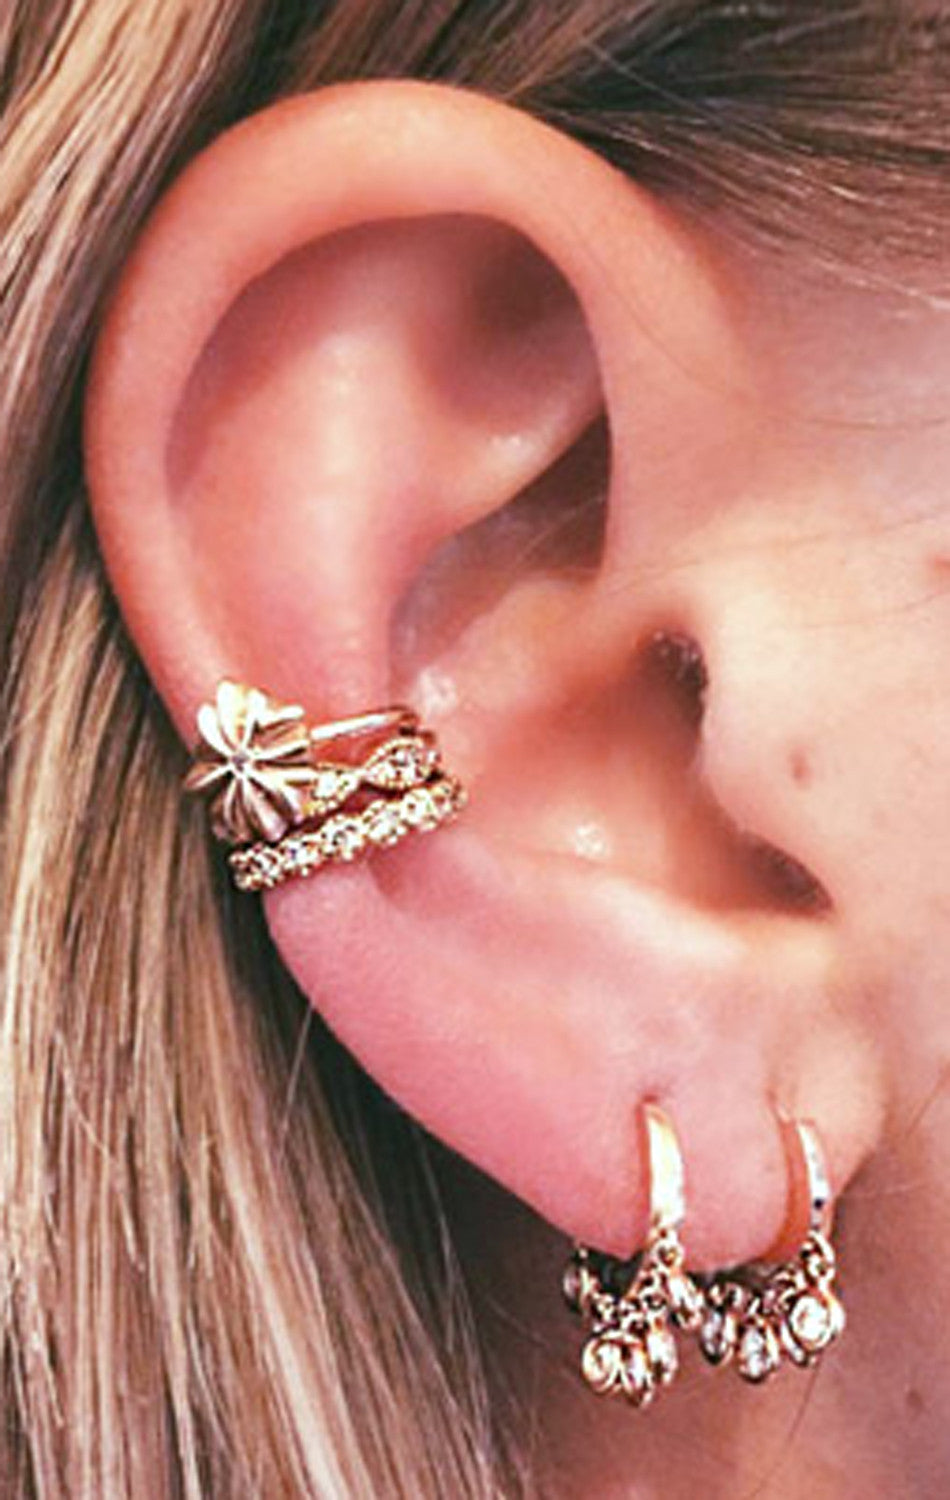 Cute Ear Piercing Ideas Conch Piercing Cuff Earring Simple Tumblr - MyBodiArt.com